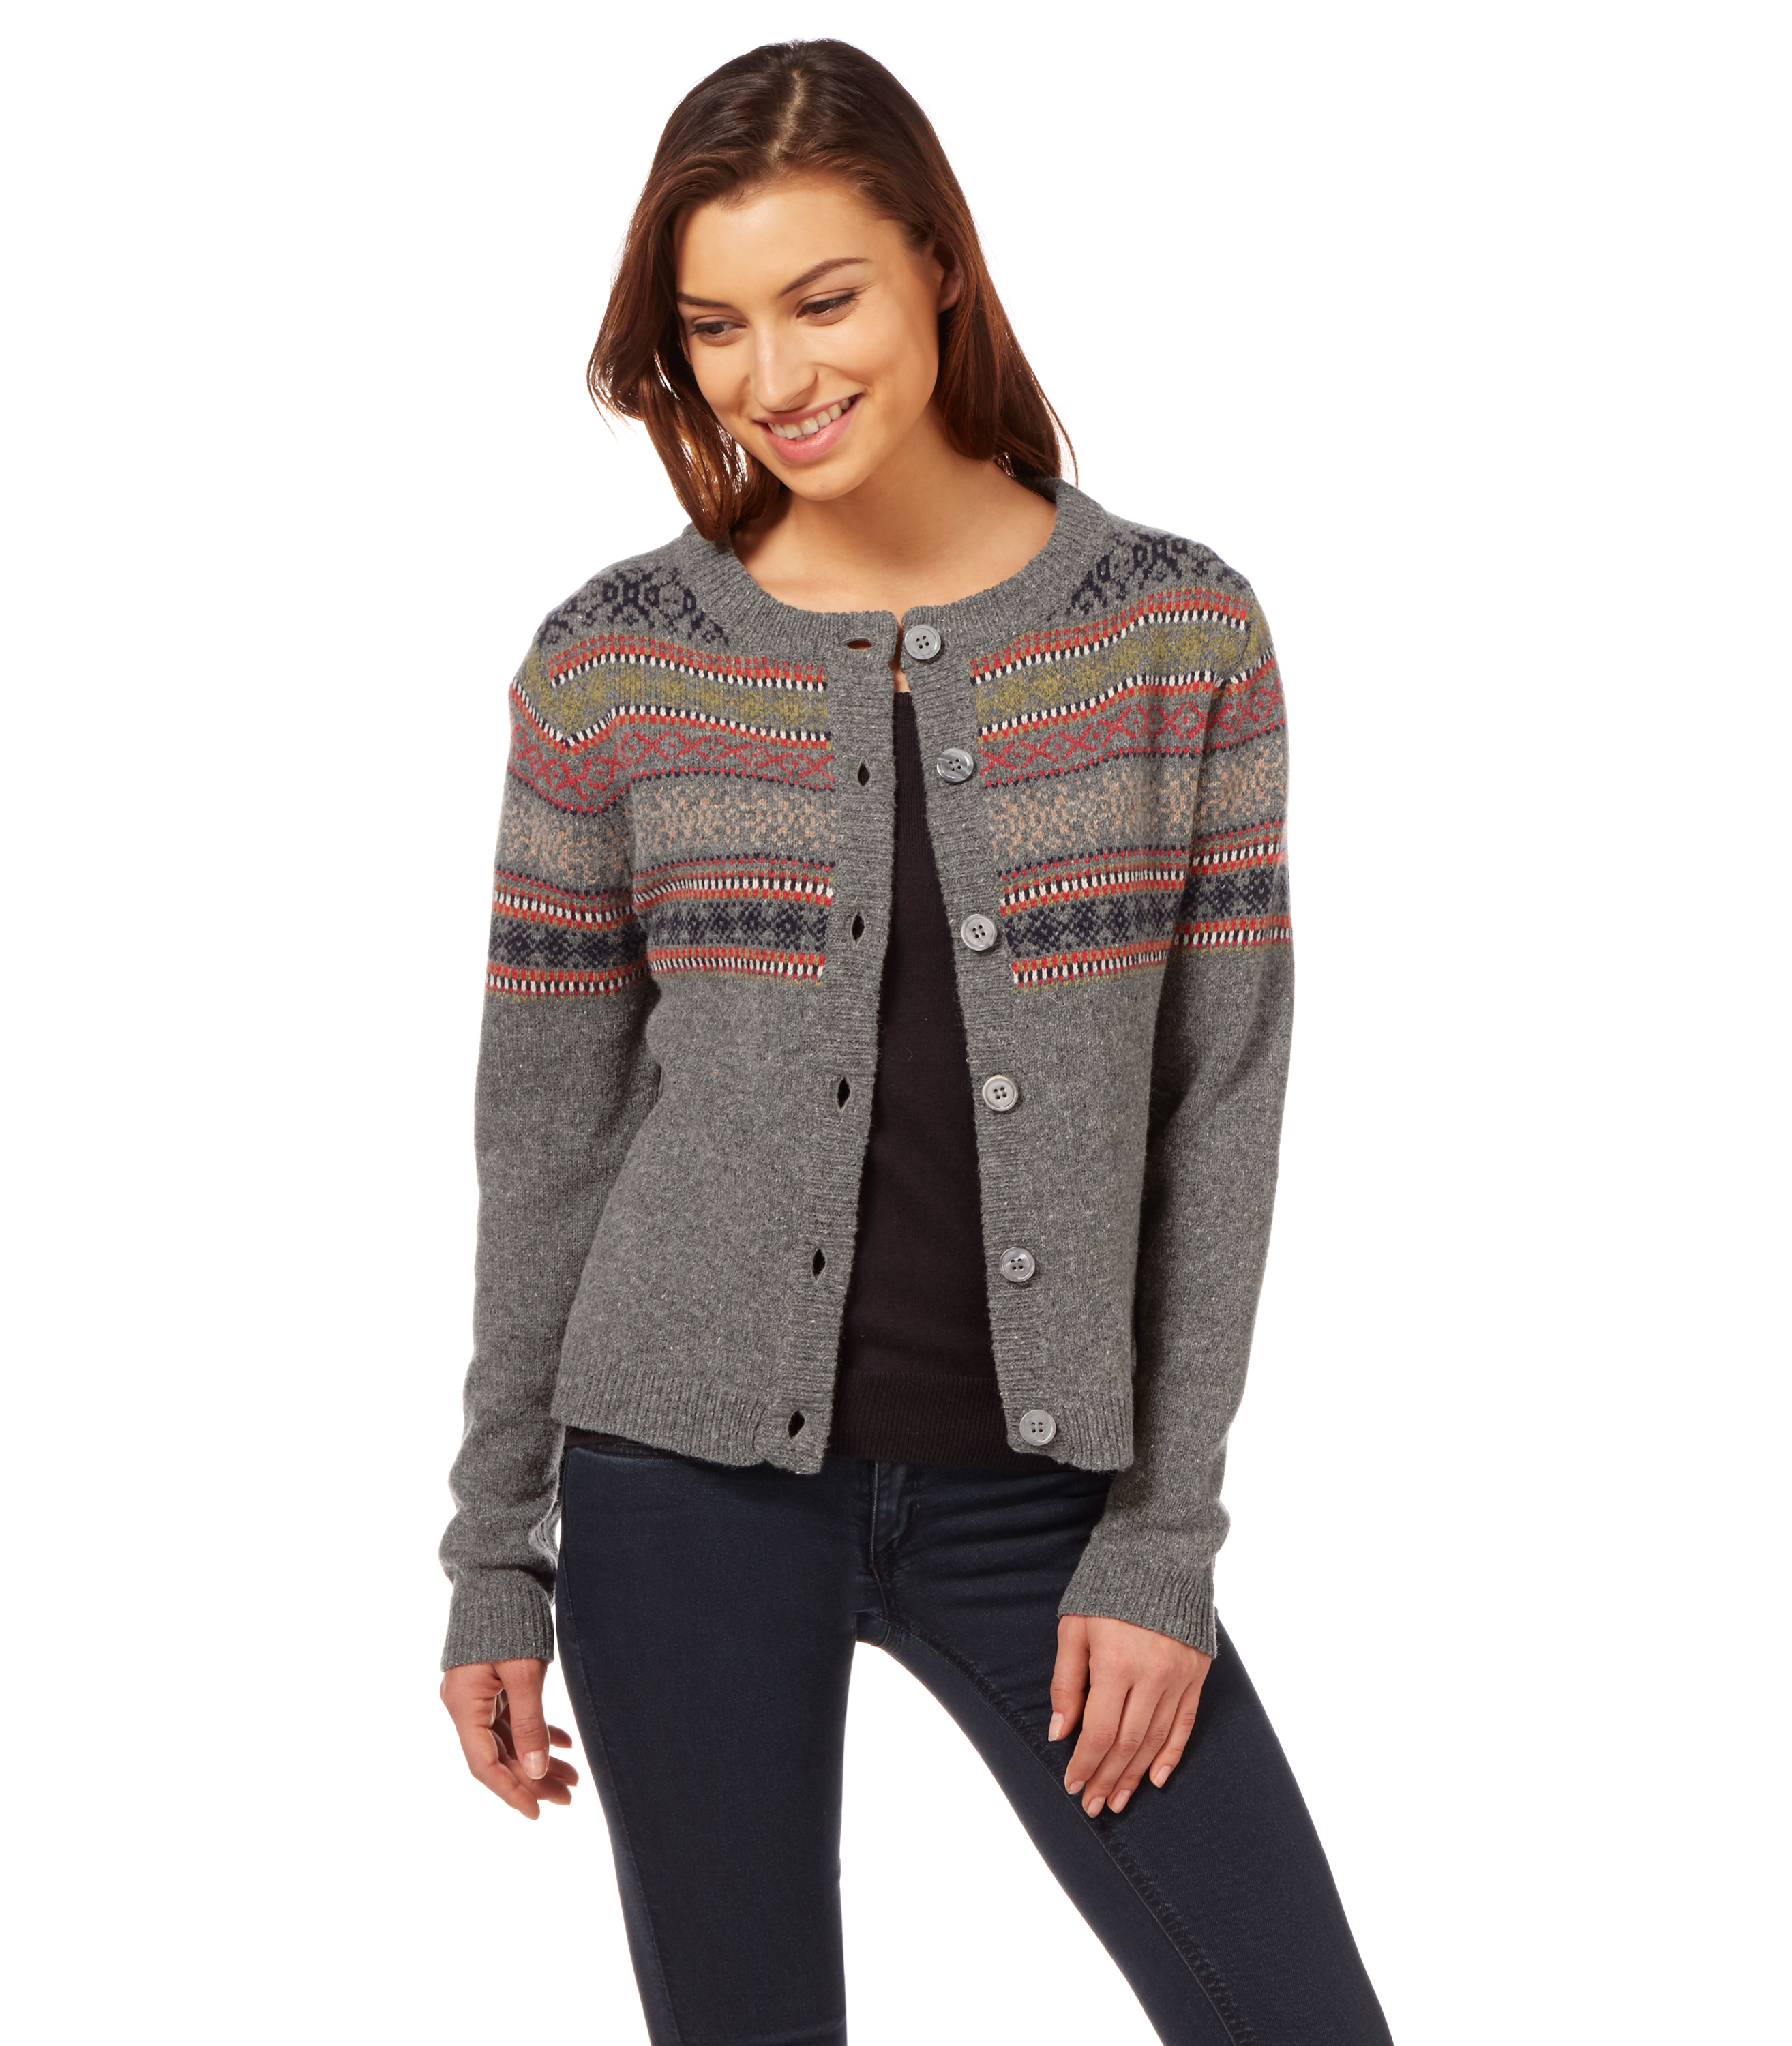 Shop our Collection of Women's Cardigan Sweaters at megasmm.gq for the Latest Designer Brands & Styles. FREE SHIPPING AVAILABLE!